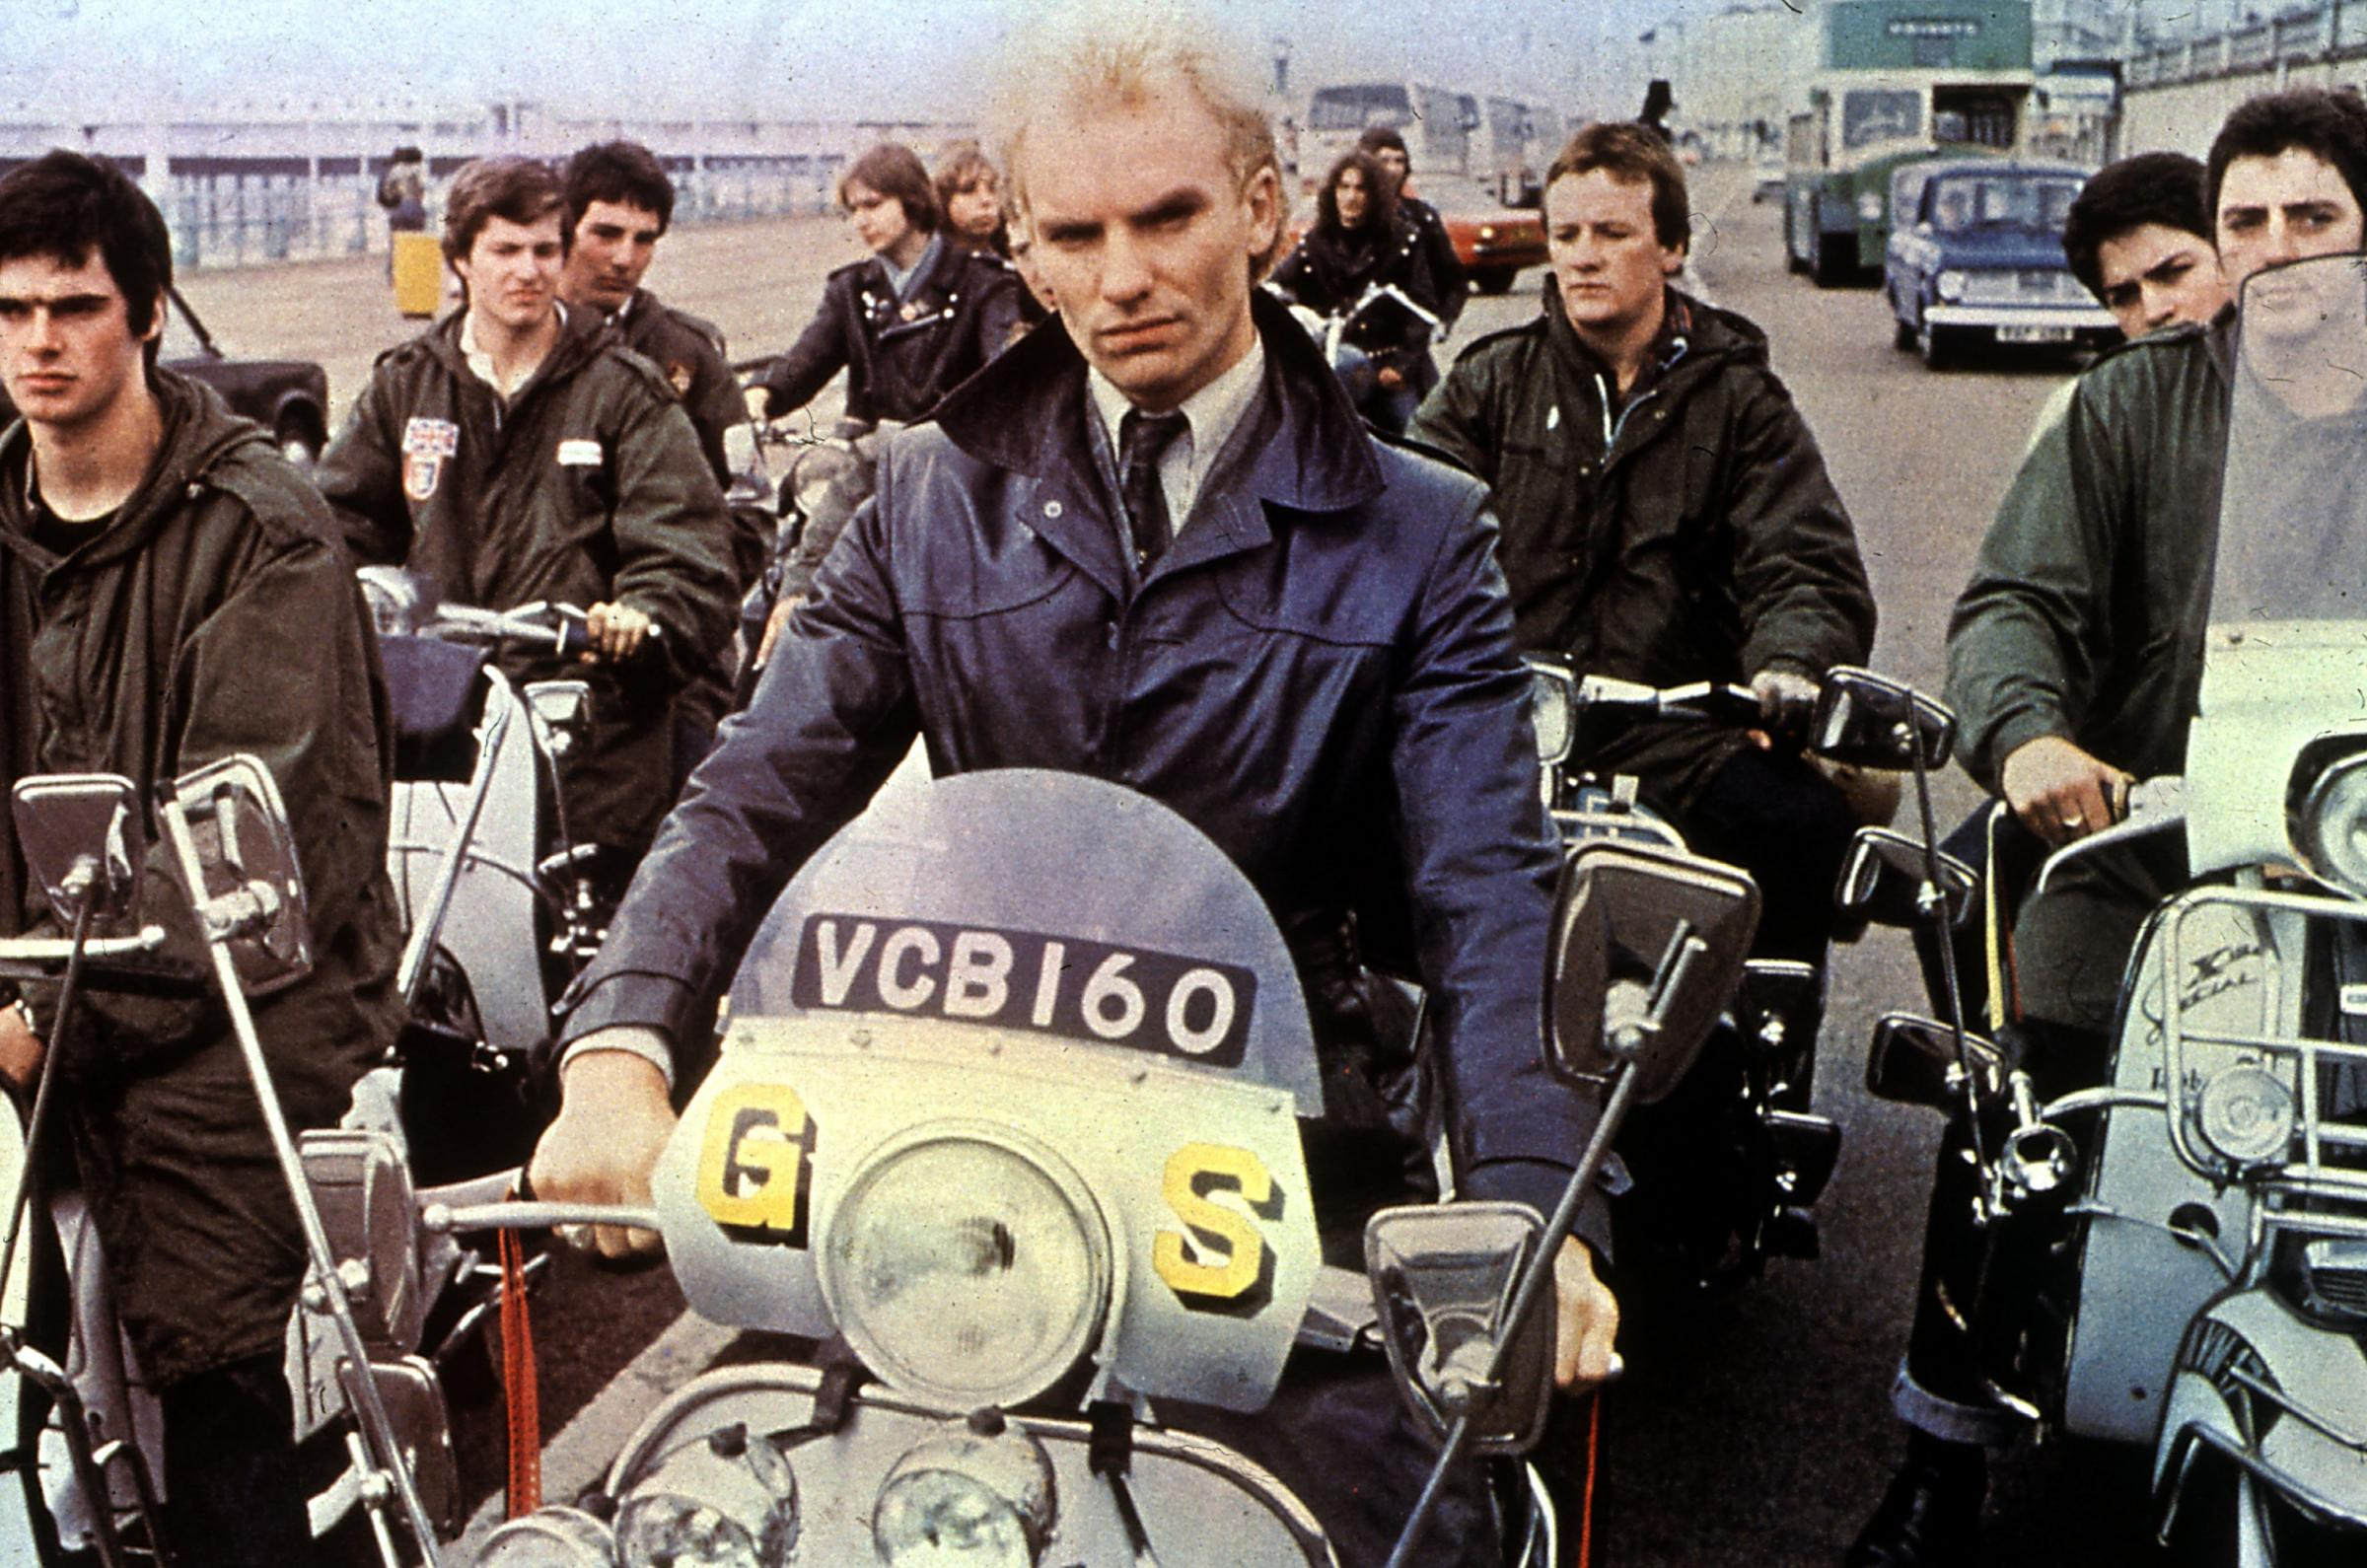 Spin off of the cult classic Quadrophenia to be shot in Brighton ...